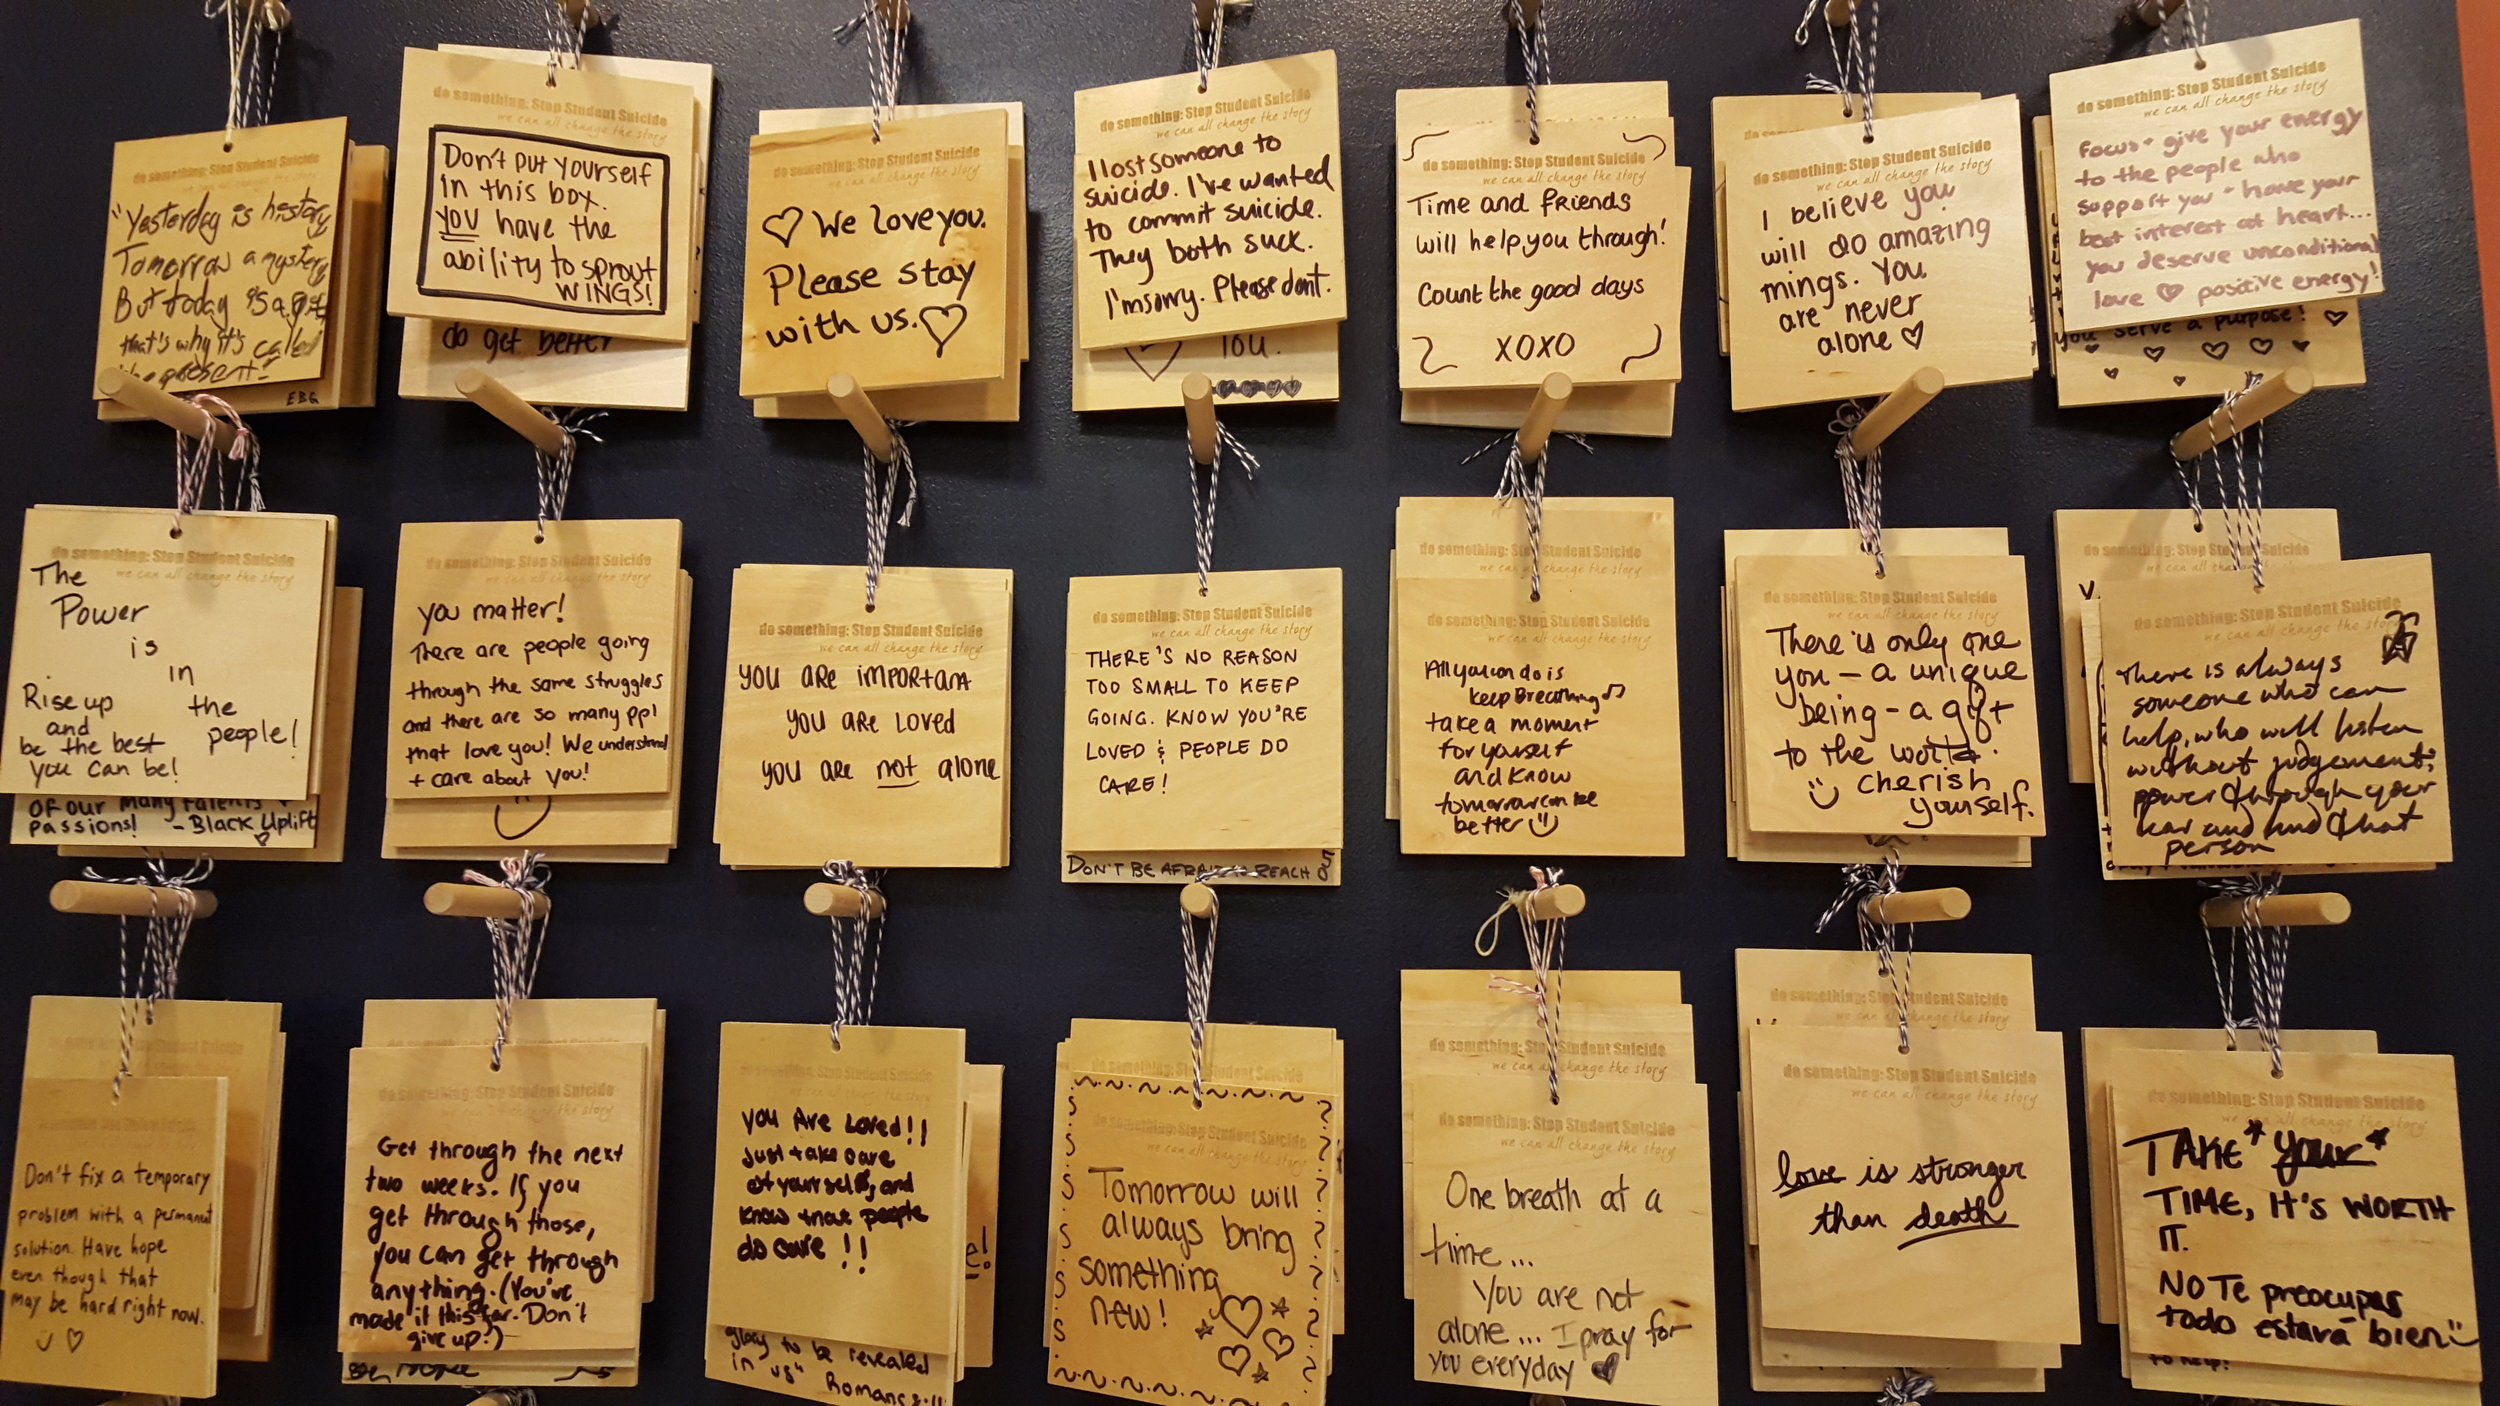 The wall of messages outside of University of Michigan's Counseling and Psychological Center. (Photo by Renee Gross)